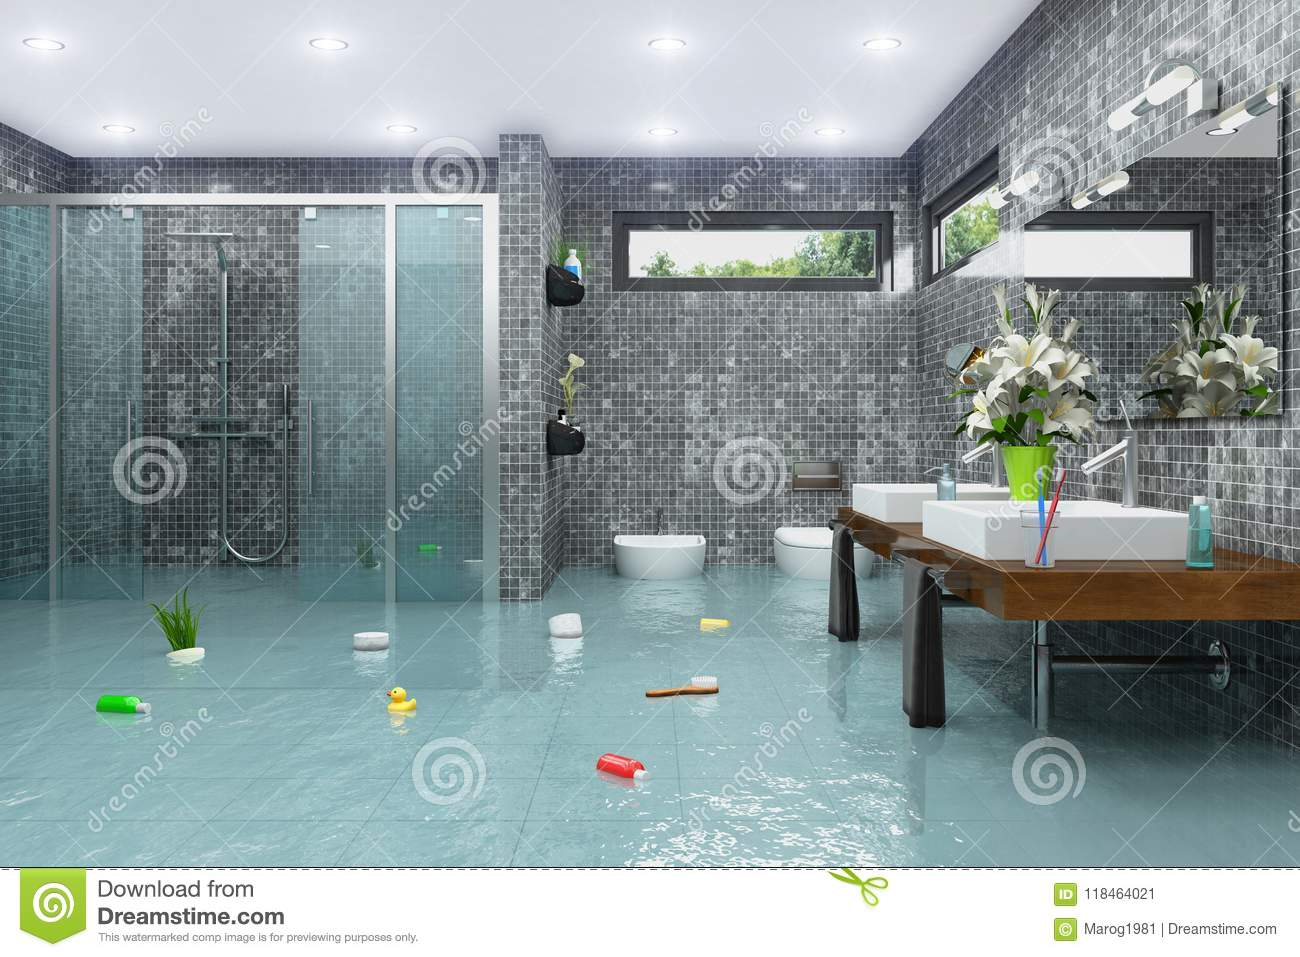 Broken Clogged Toilet Overflowing Out Of Order Stock Vector - Illustration  of bathroom, symbol: 108340400